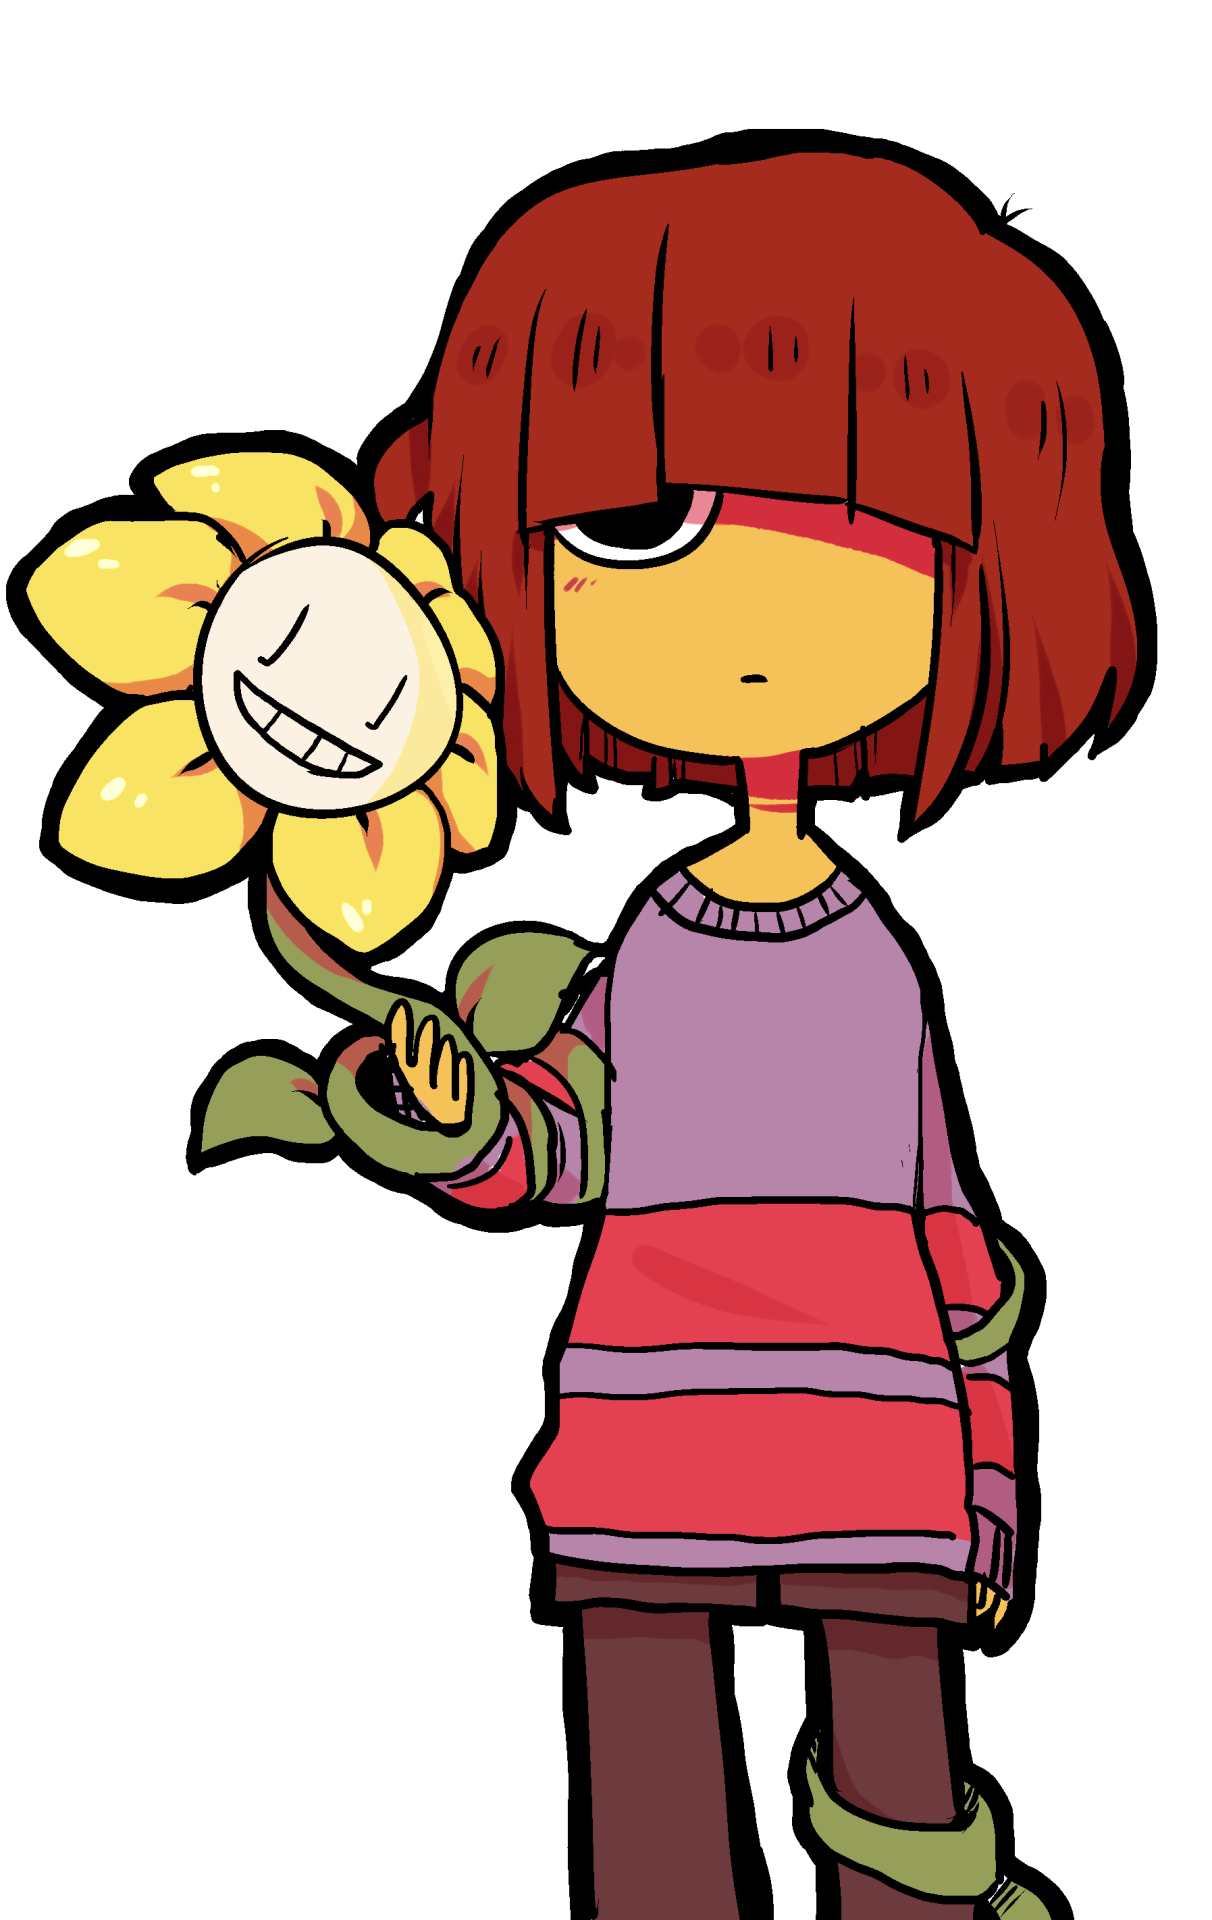 Frisk undertale png. Chara controlled christmas pesquisa